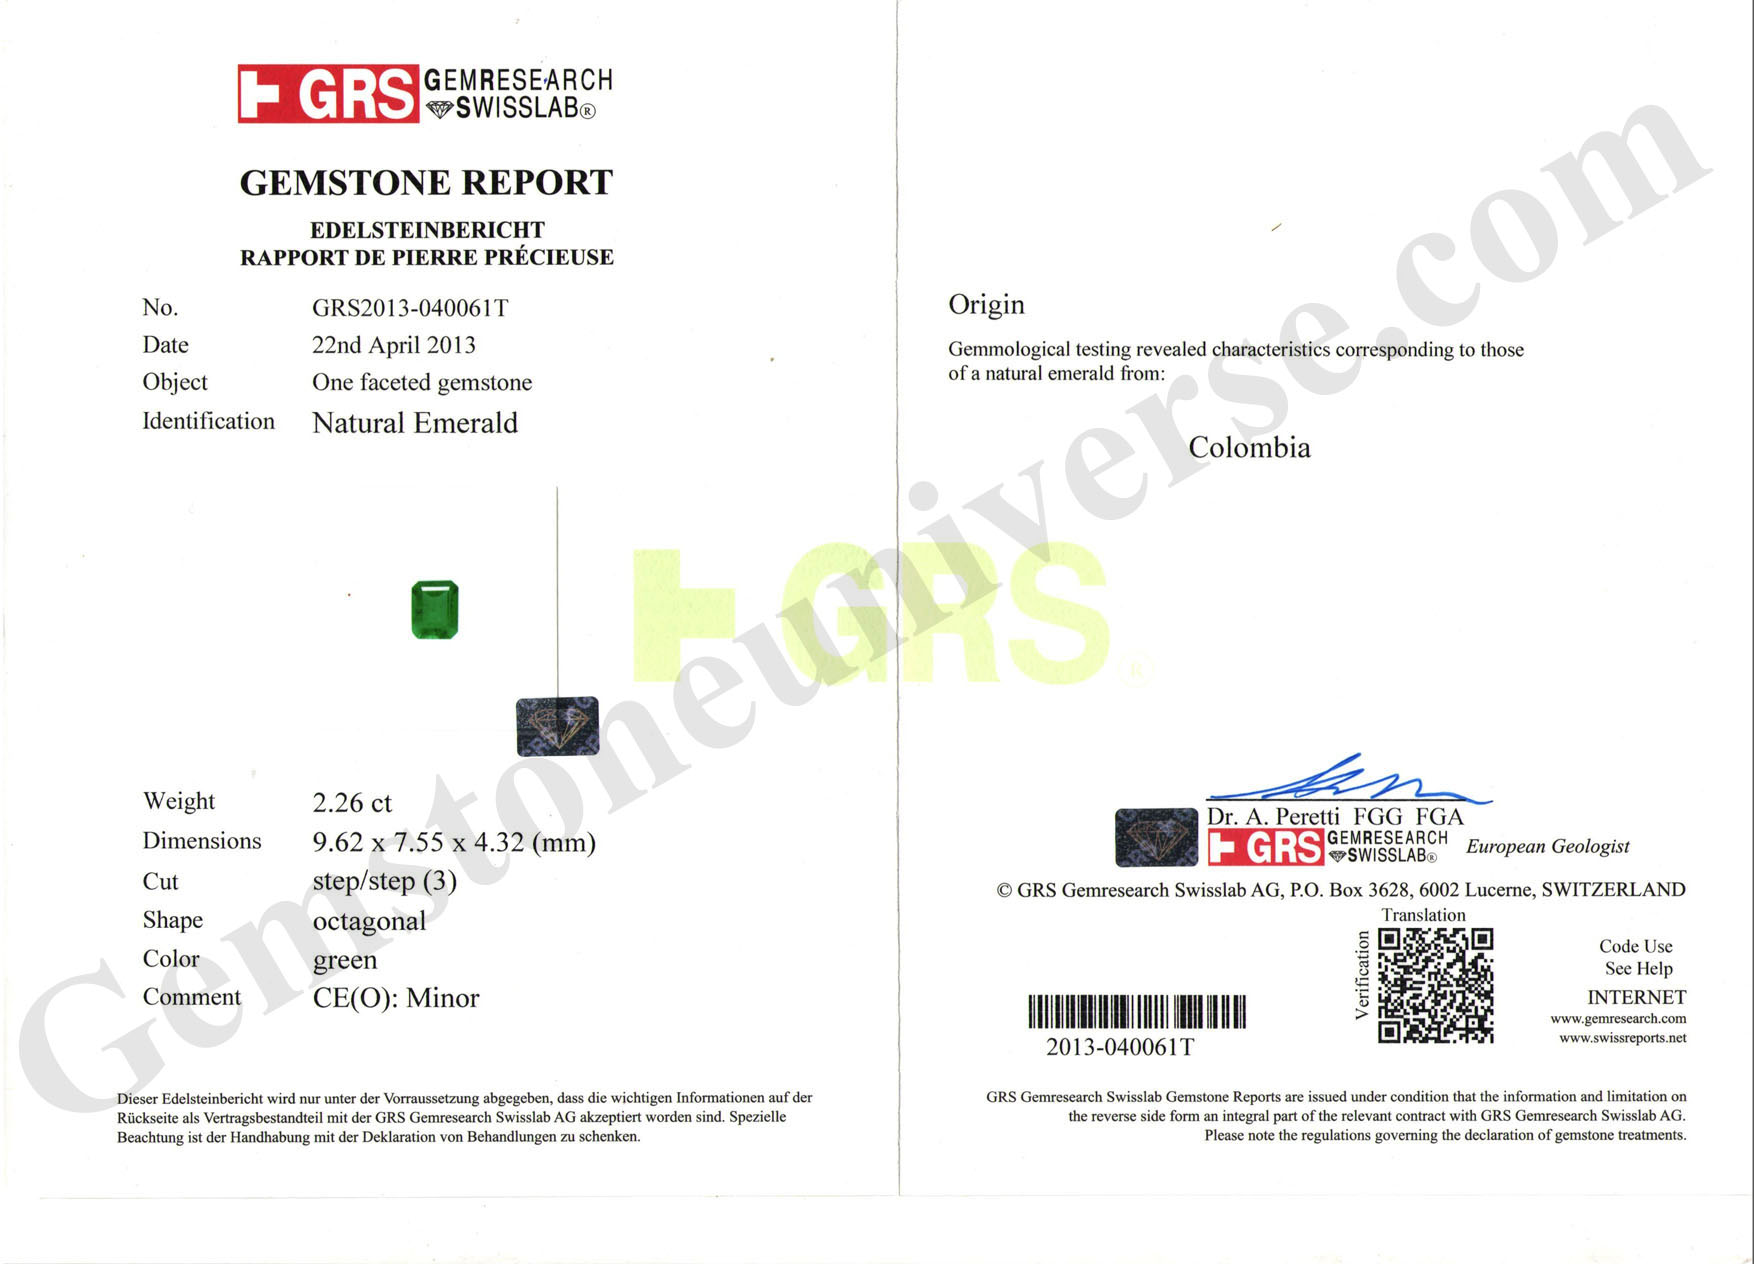 GRS Certificate for the above Emerald